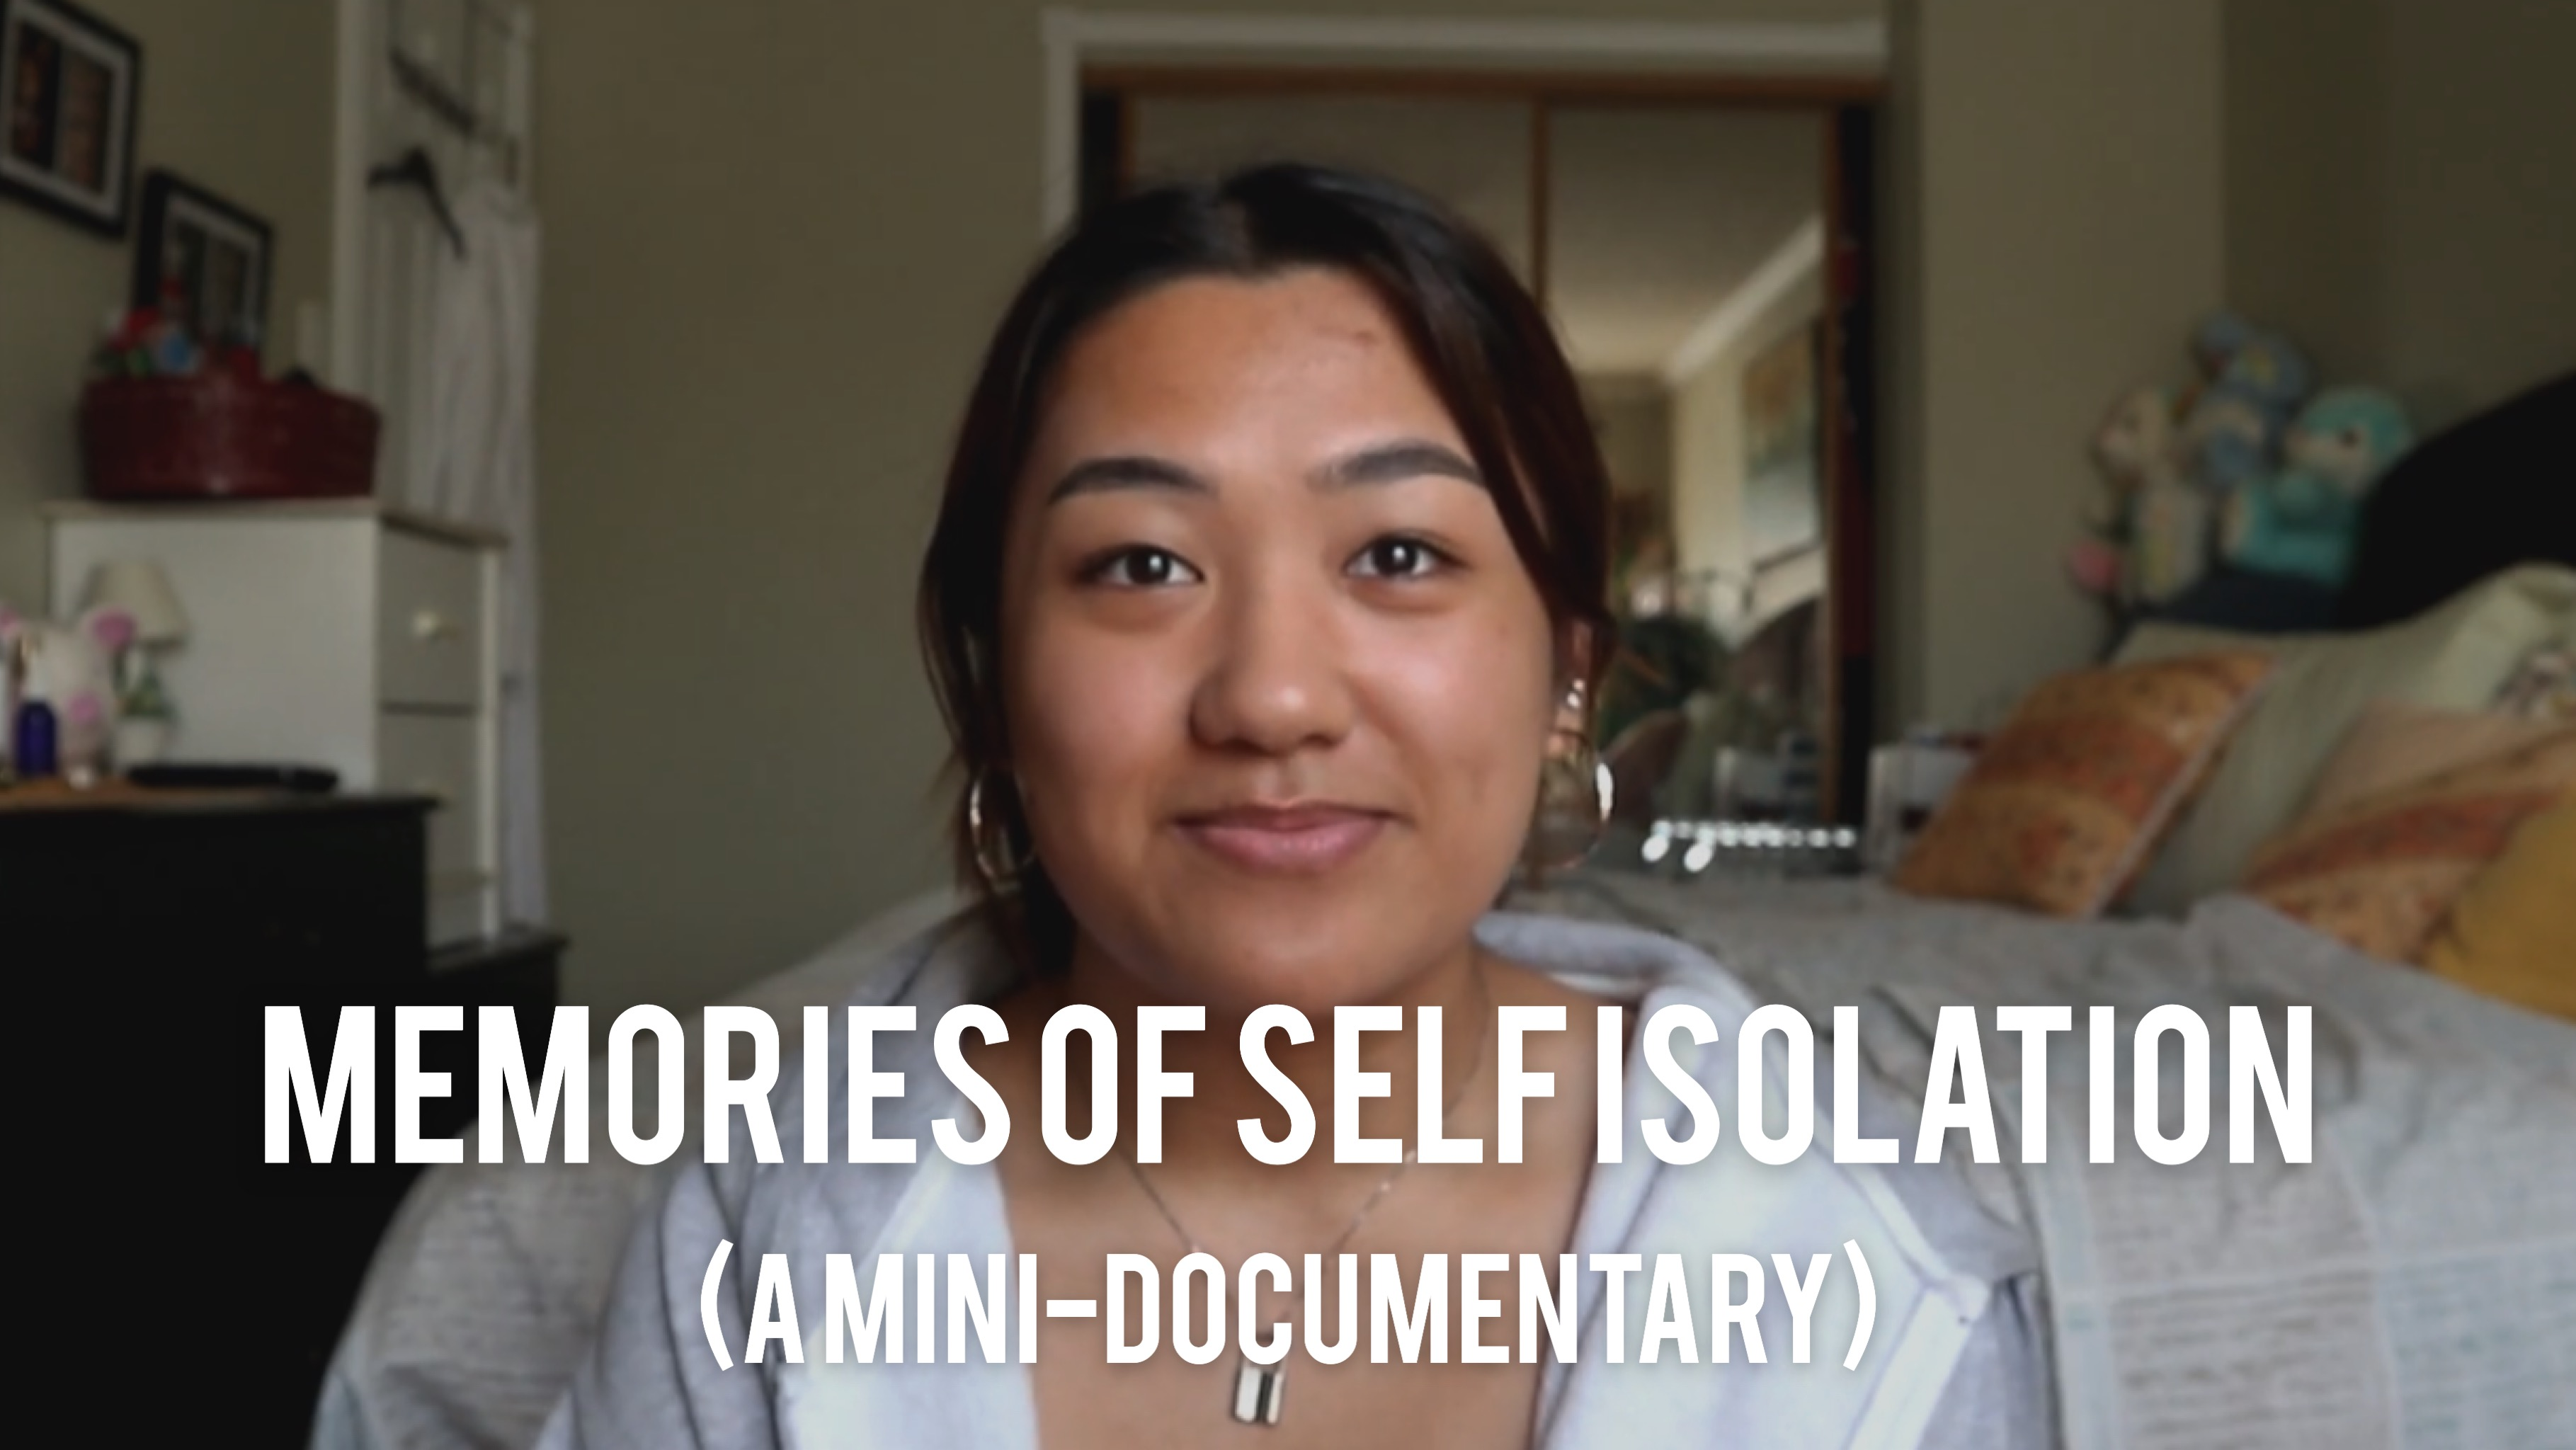 portrait of a woman facing the camera with her bedroom in the background, text reads 'Memories of Self Isolation (A mini-documentary)'